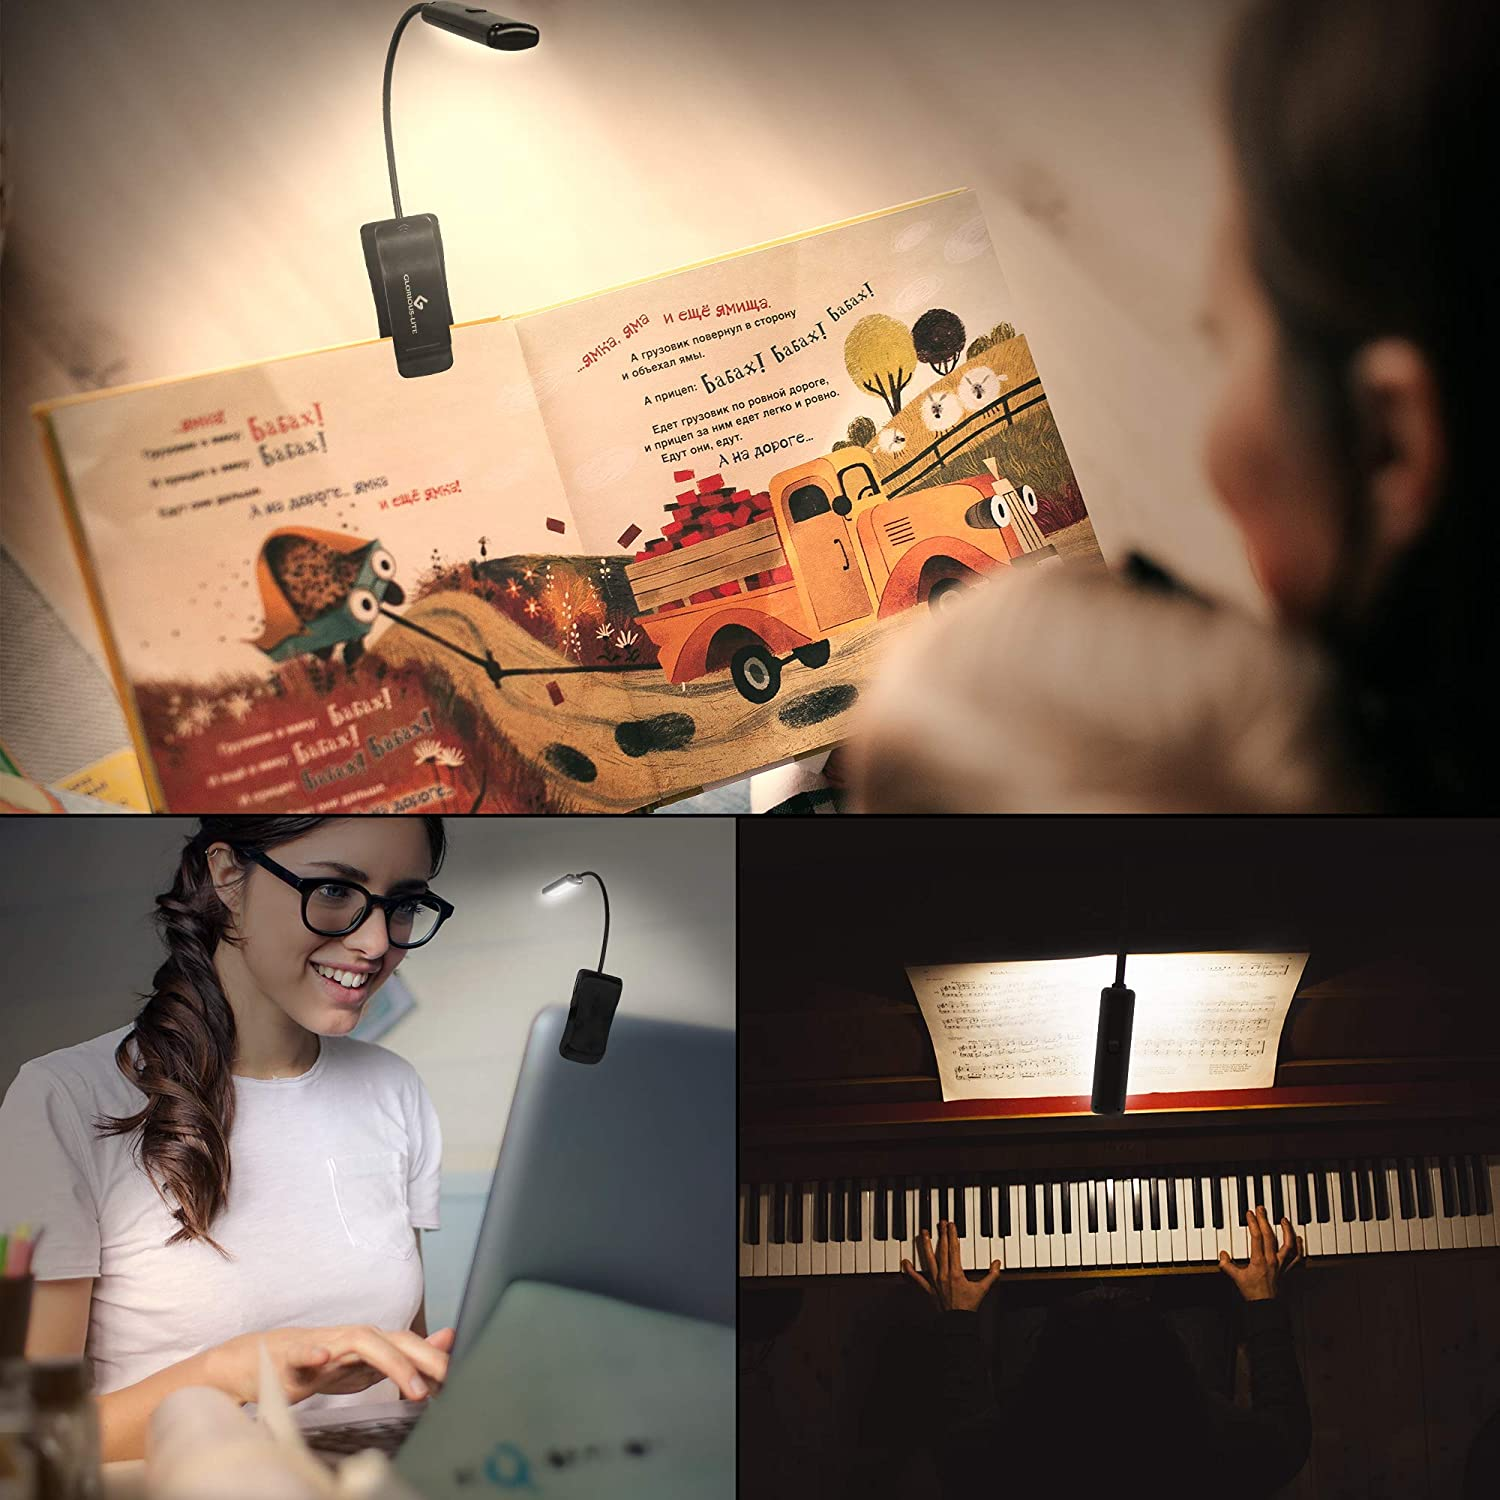 GLORIOUS-LITE 10 LED Book Light Lightweight/&Eye Caring 2 Brightness Perfect for Bookworms USB/&Battery Operated Portable Music Stand Light Reading Lights with Warm//White//Natural Light